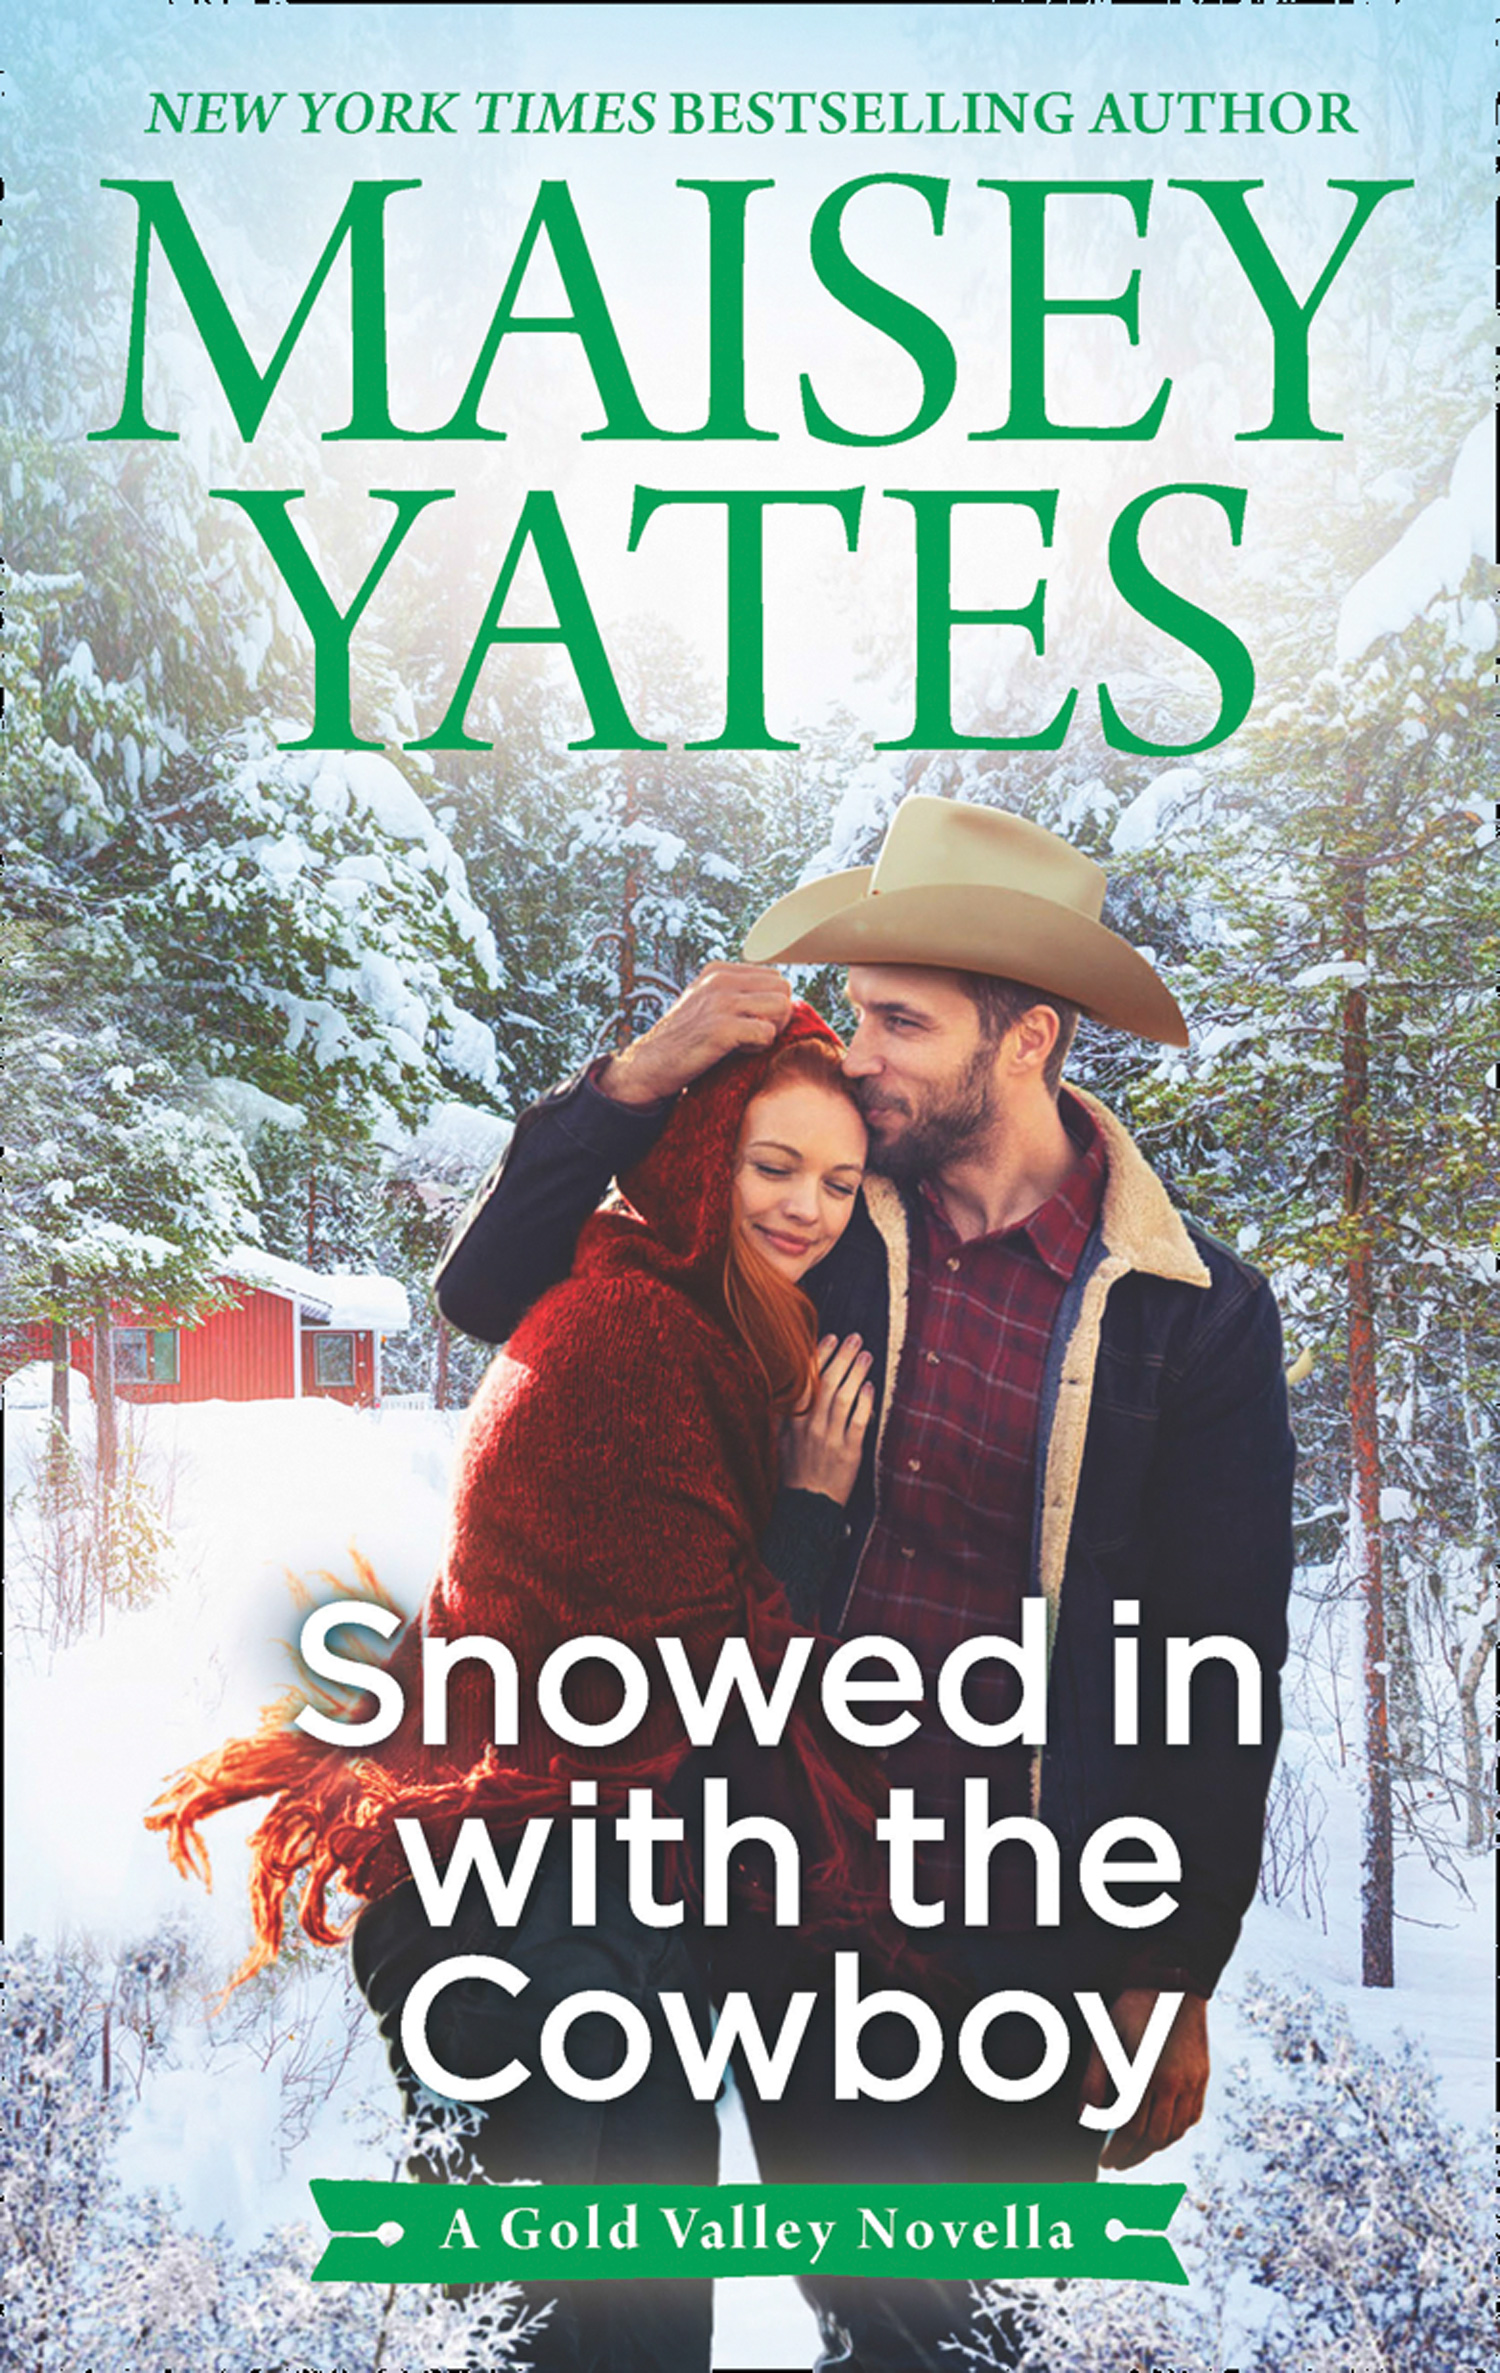 Snowed in with the Cowboy – Maisey Yates, HarperCollins Publishers